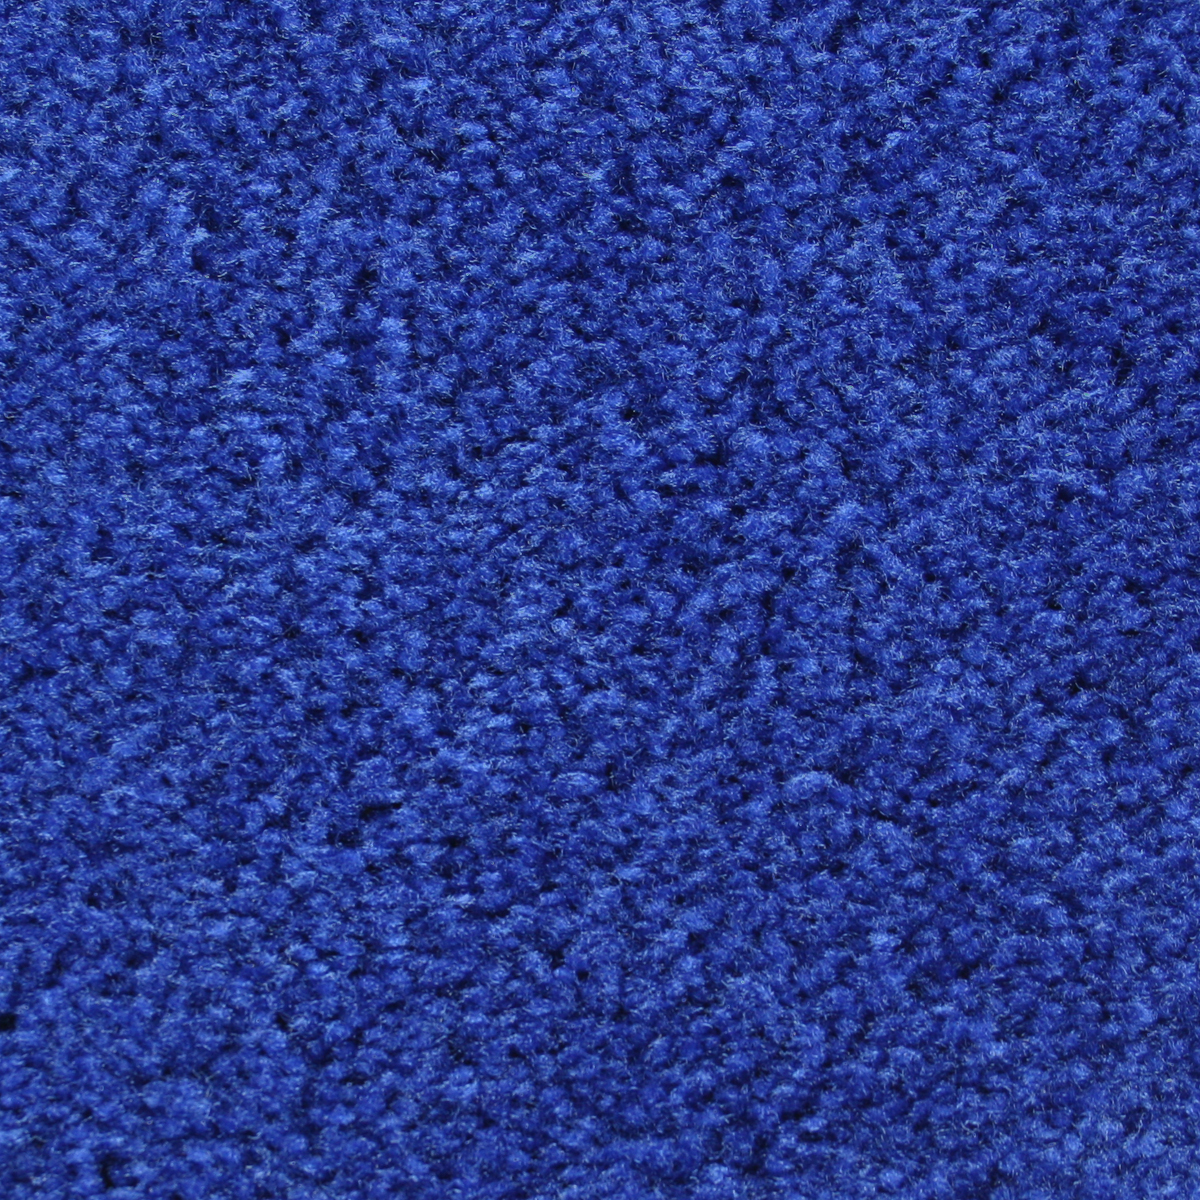 Royal Blue Carpet Runner Carpet Vidalondon